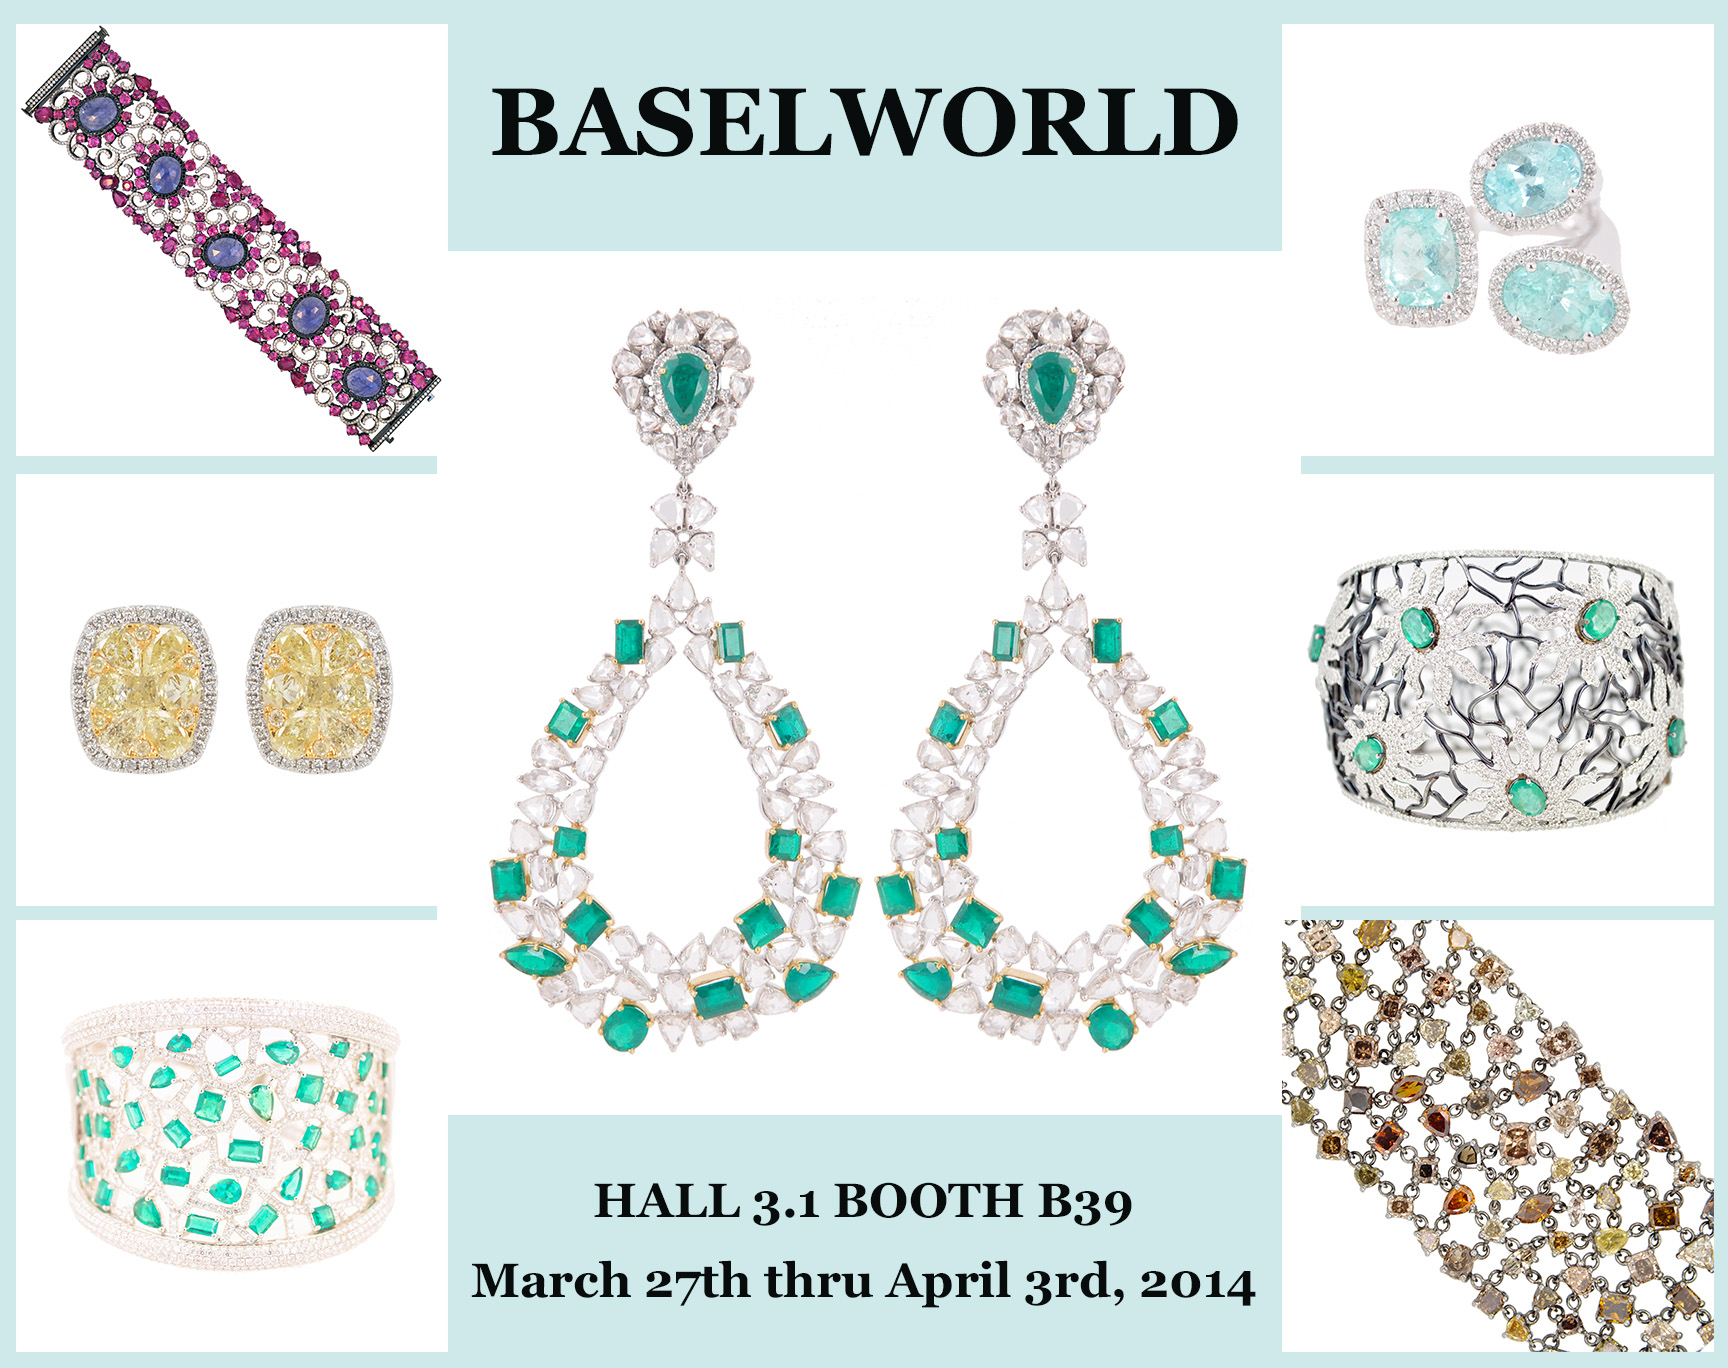 Make sure you come and see our newest collections at Baselworld!